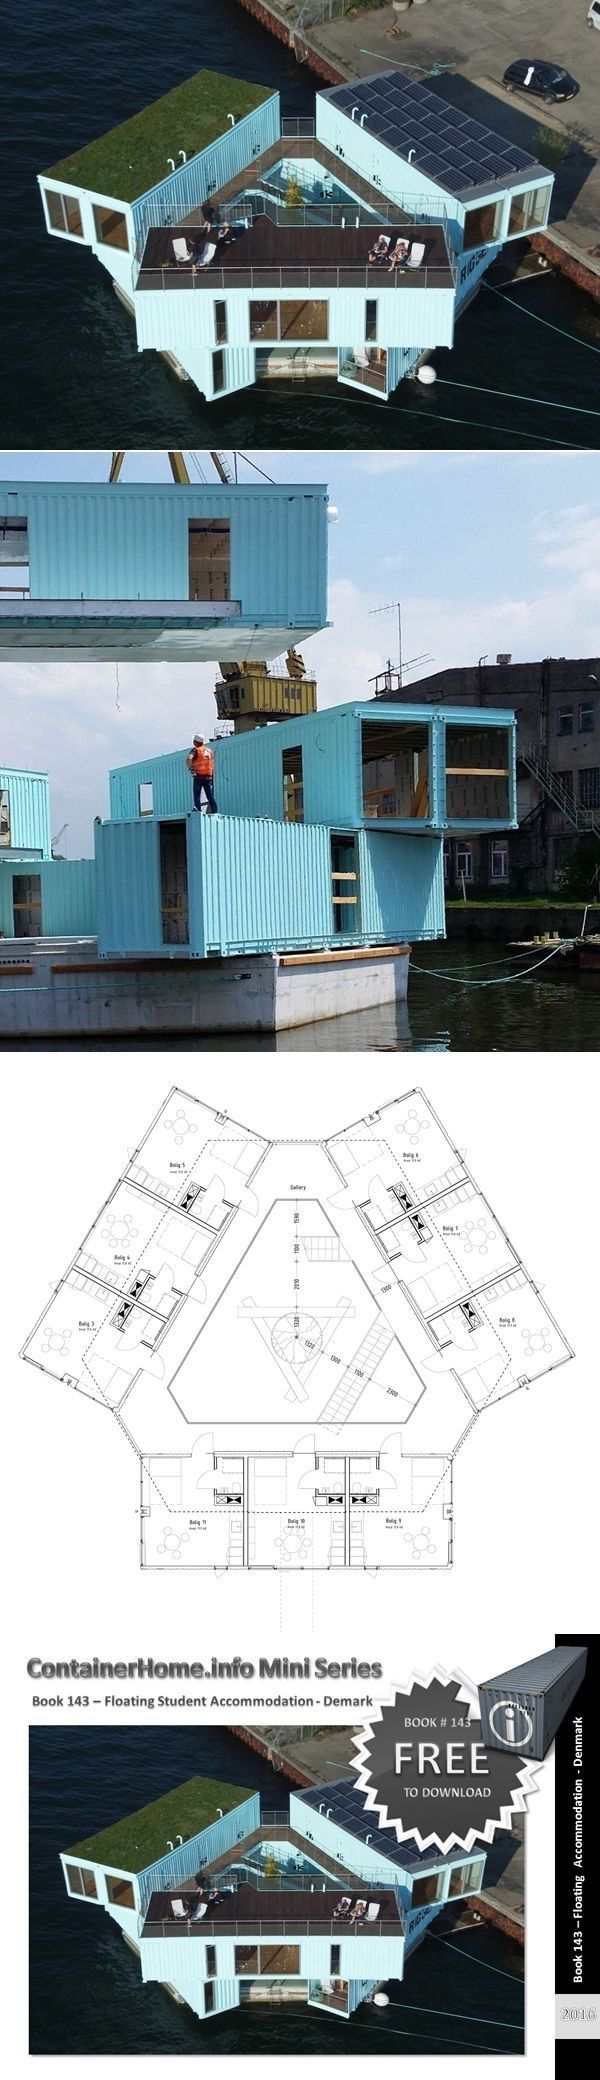 Wohnideen Container shipping container homes book series book 143 shipping container